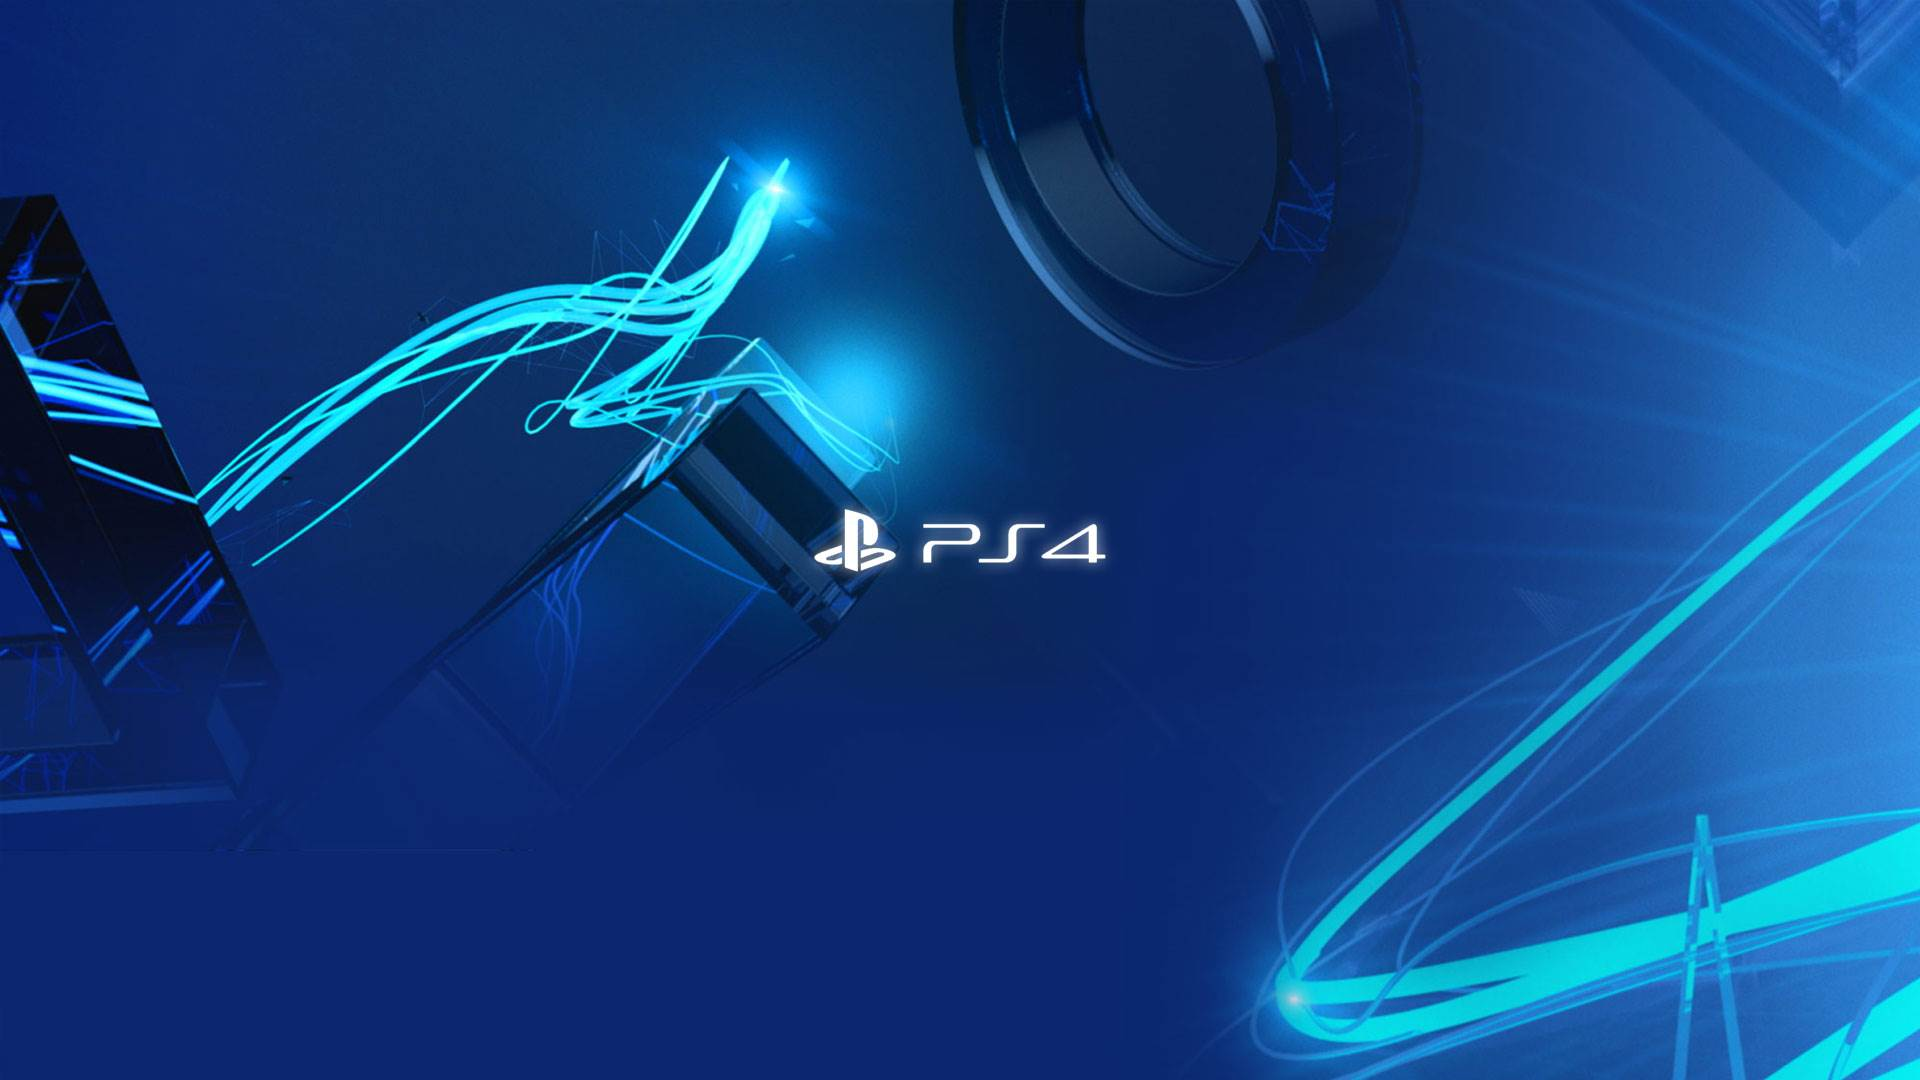 Ps4 Live Wallpaper